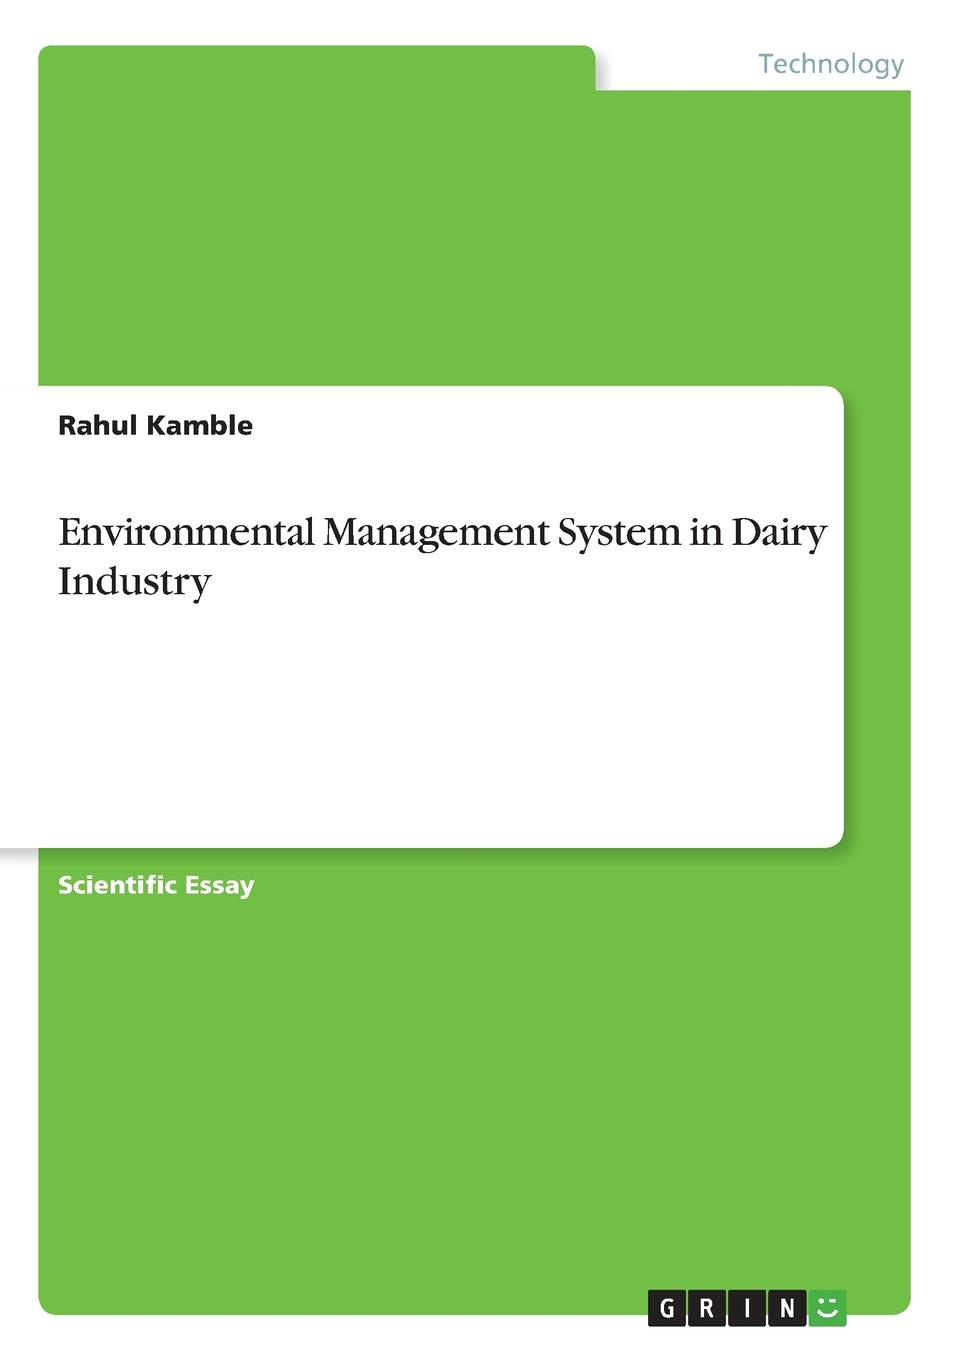 Rahul Kamble Environmental Management System in Dairy Industry kapustka lawrence a environmental risk assessment and management from a landscape perspective